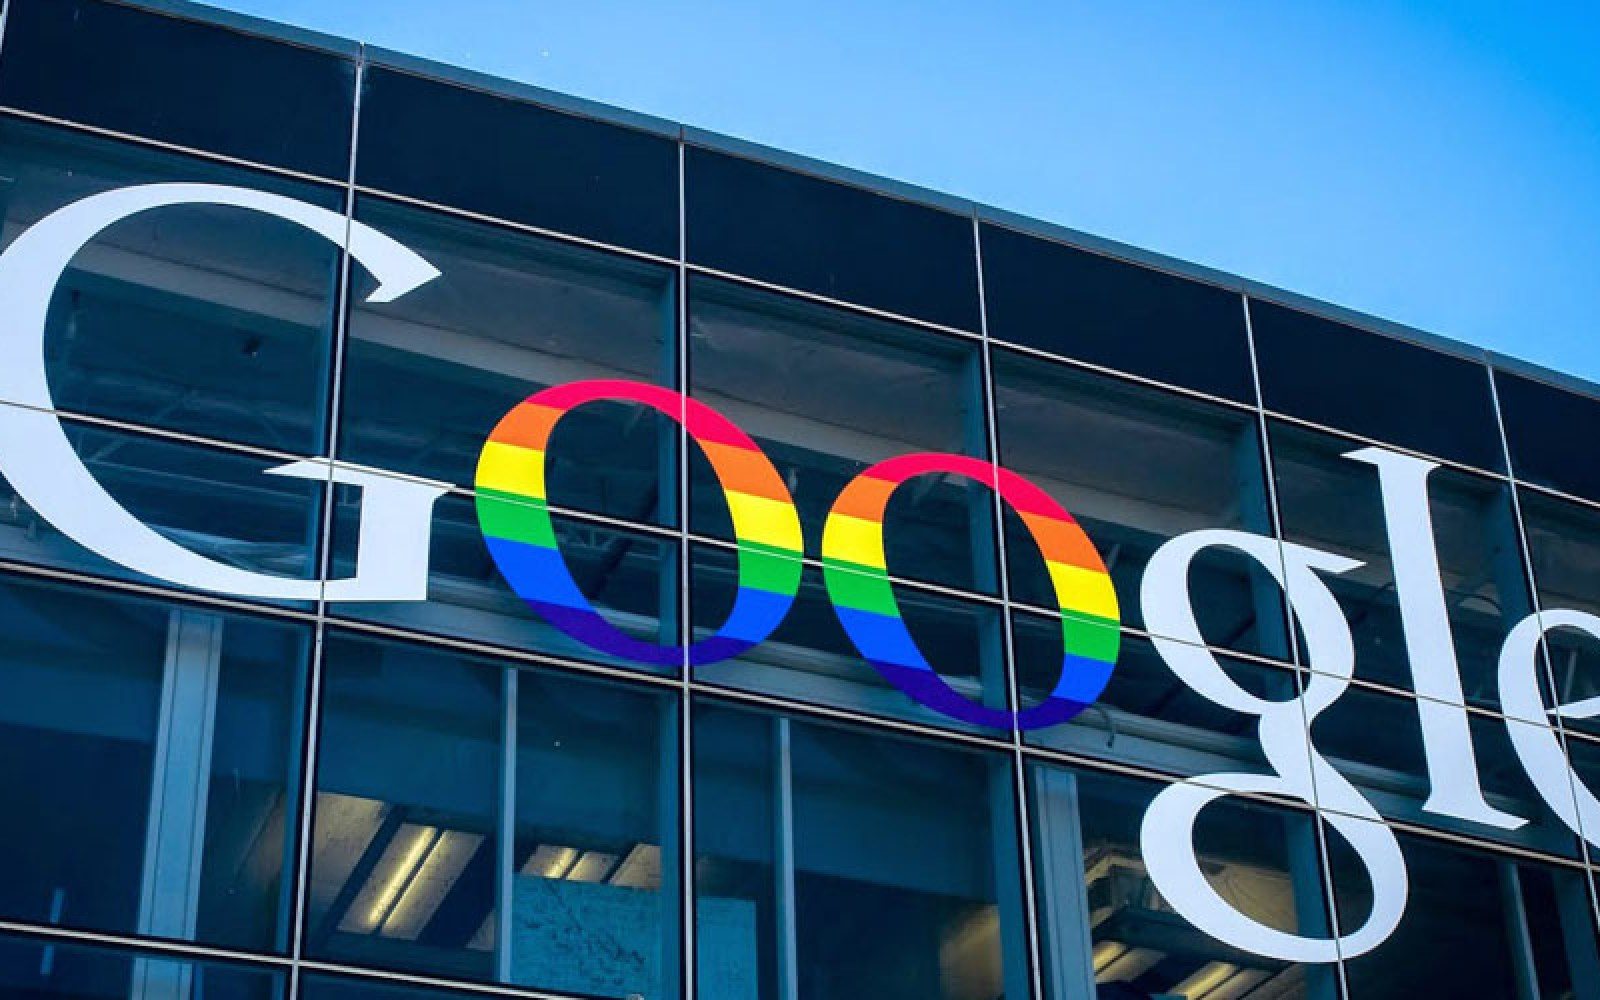 EU set to file third set of antitrust charges against Google, this time over advertising